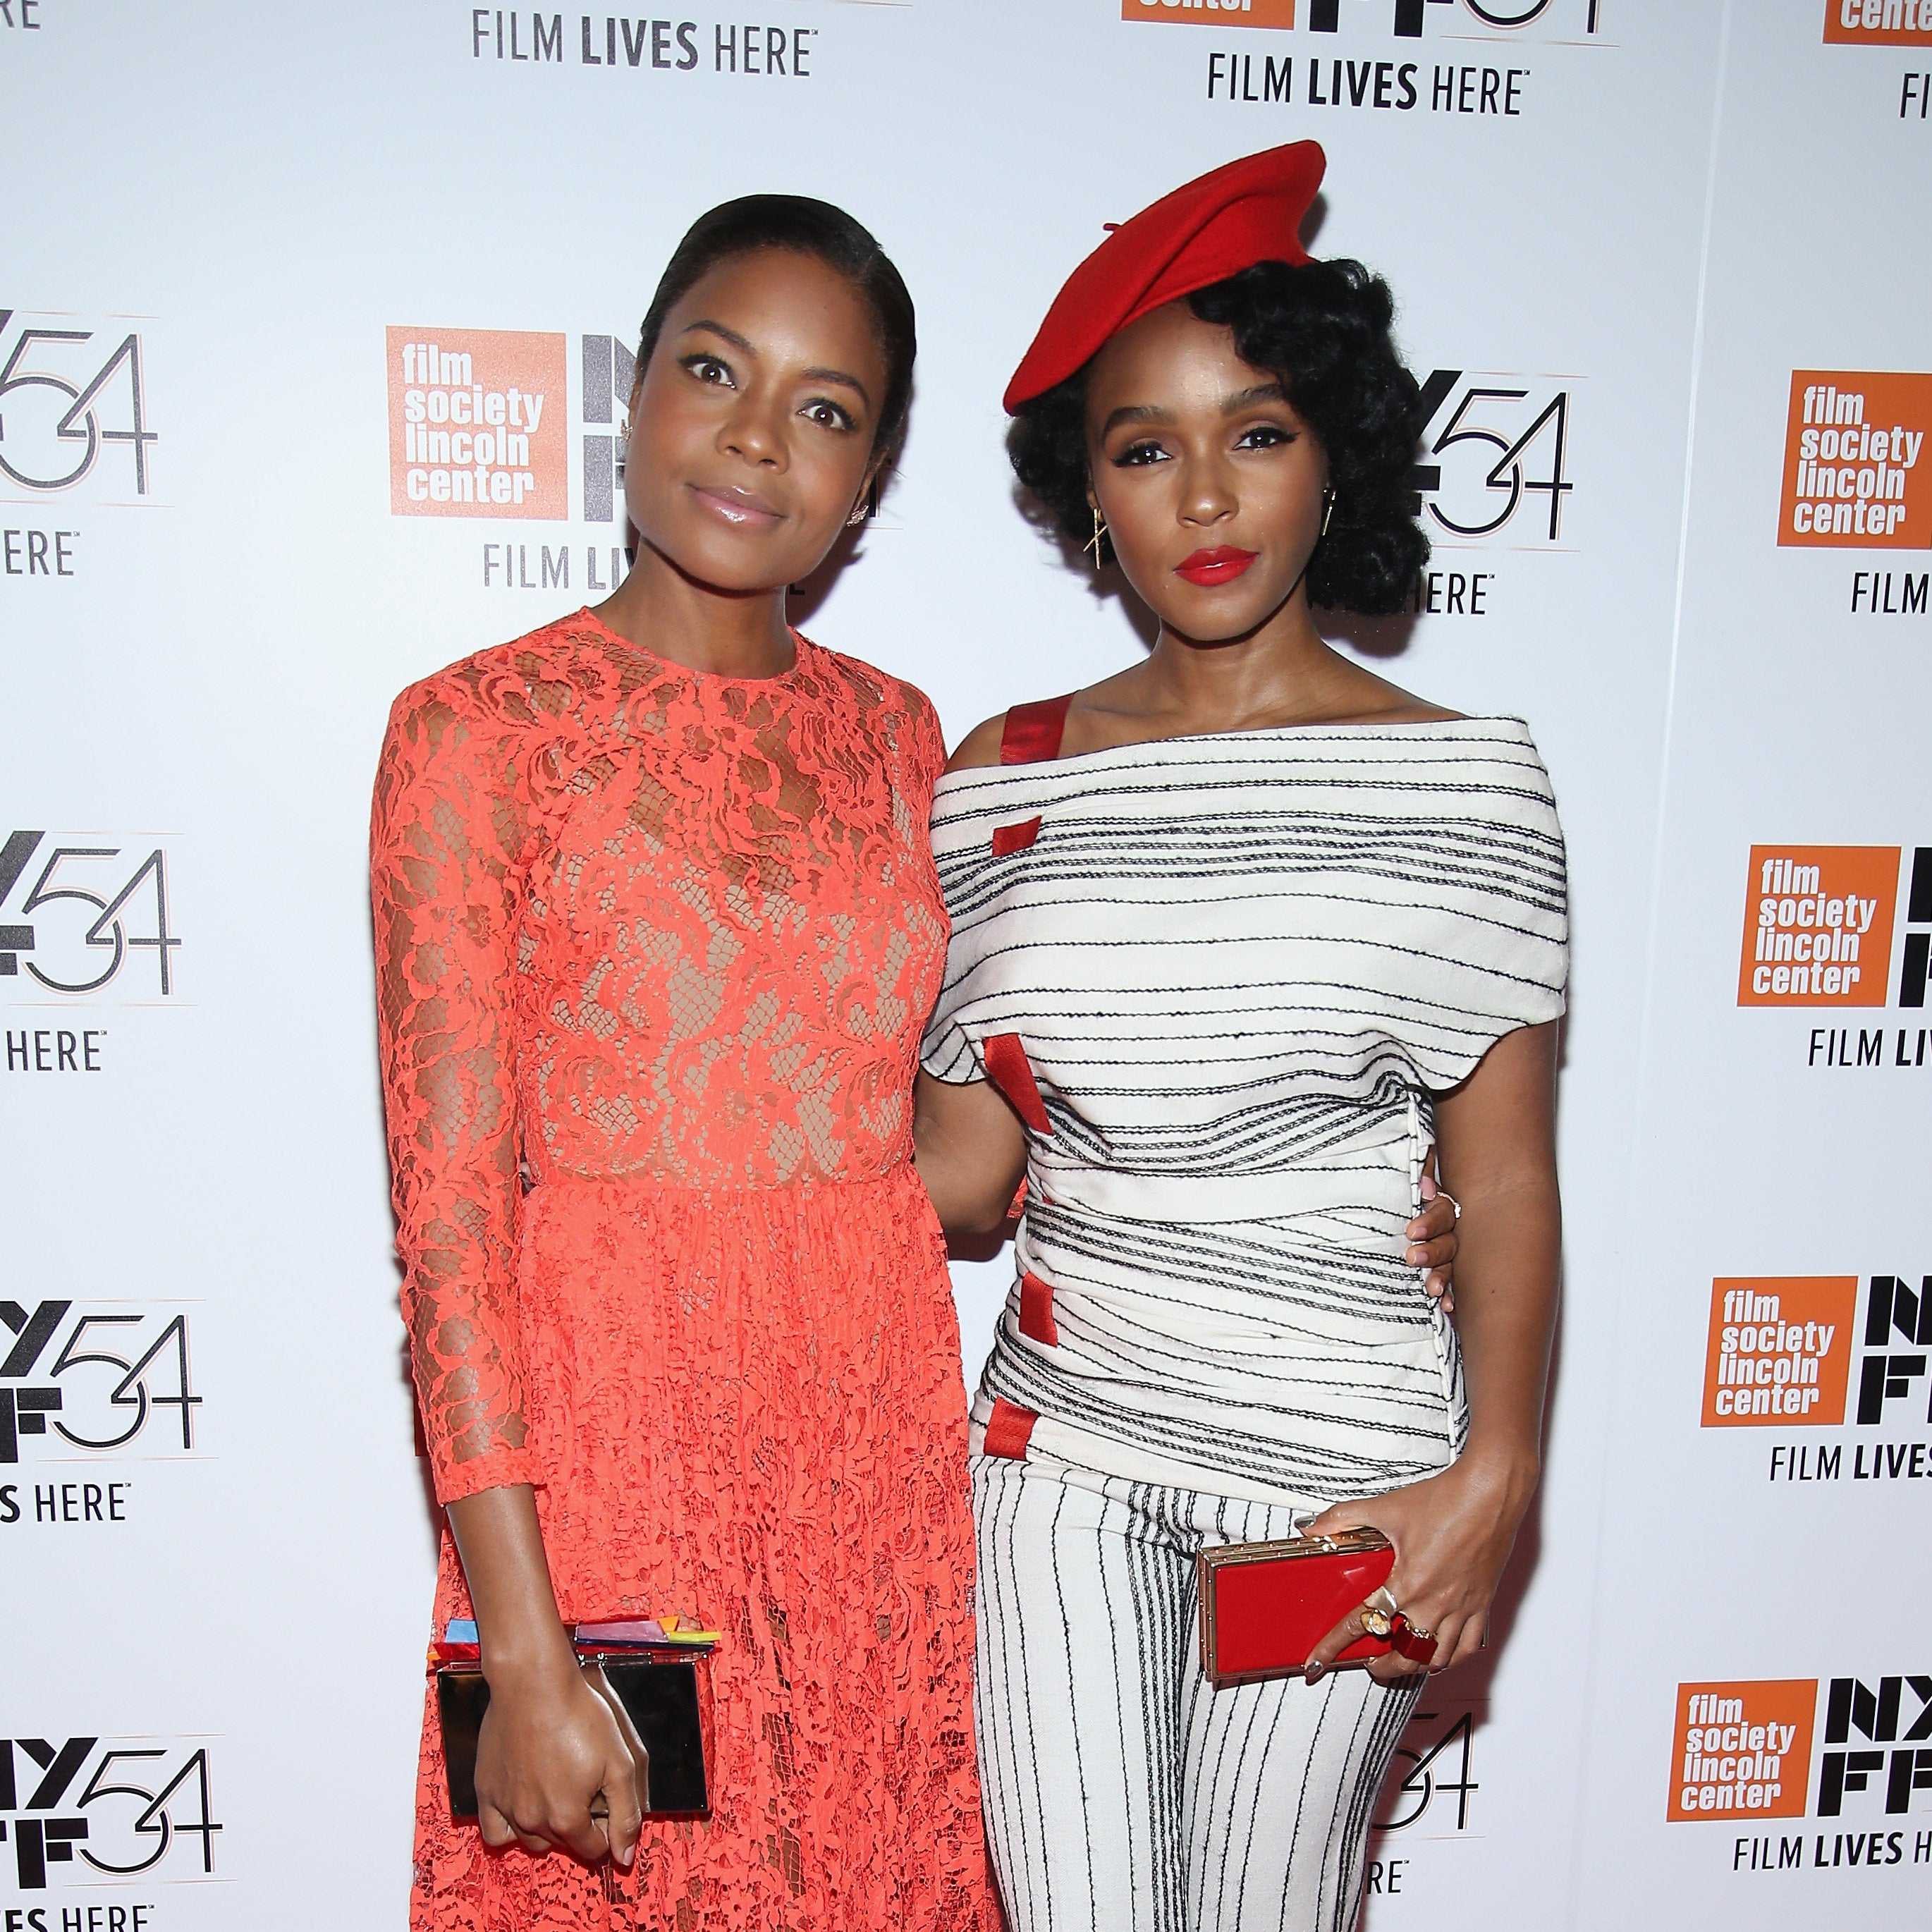 Janelle Monáe and Naomi Harris Deliver Double the Style at NYFF